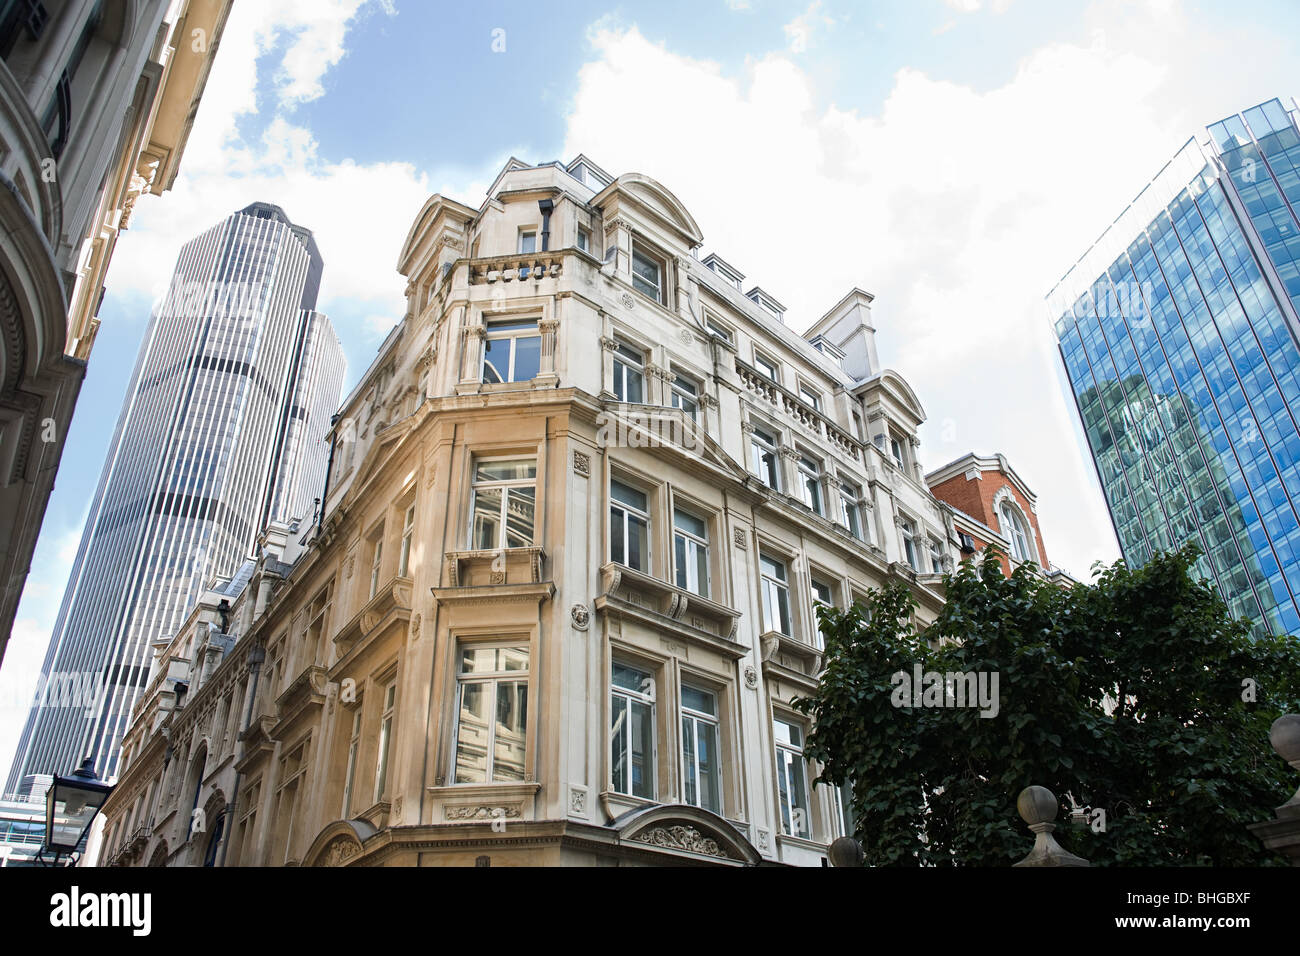 City of london buildings - Stock Image